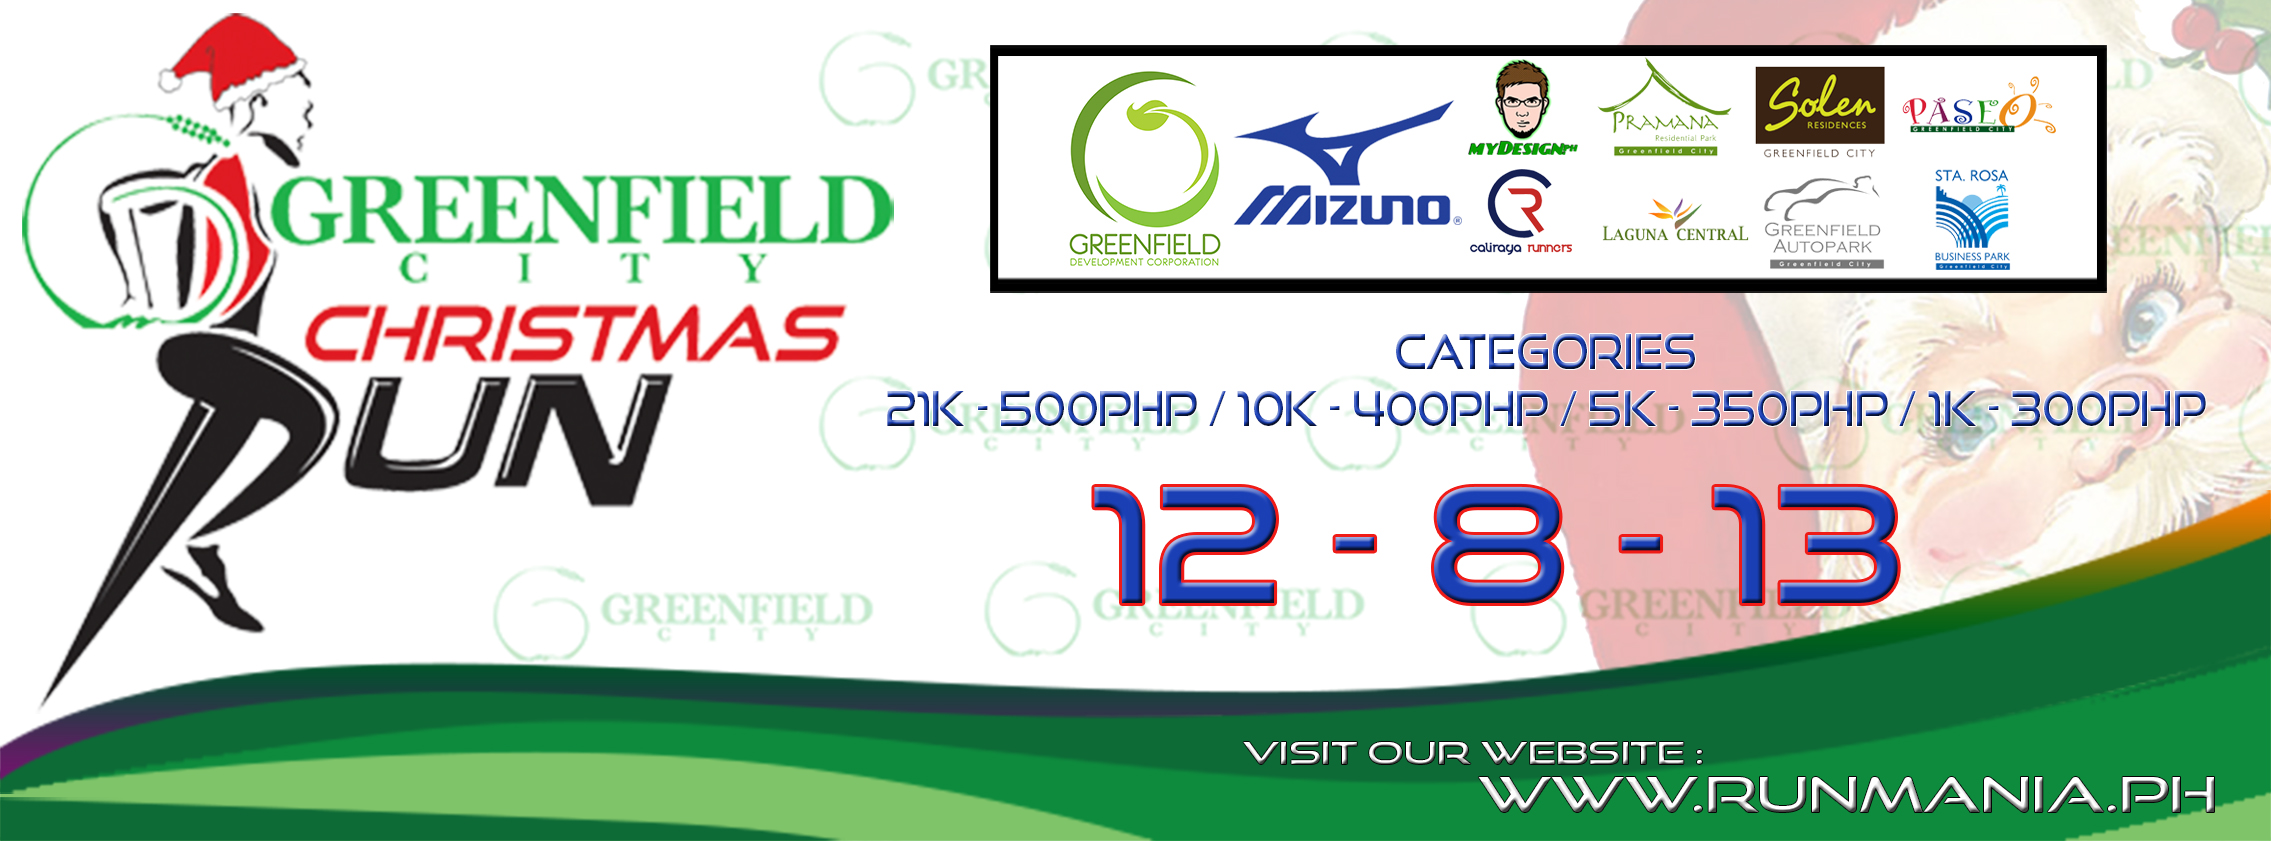 greenfield-city-christmas-run-2013-poster